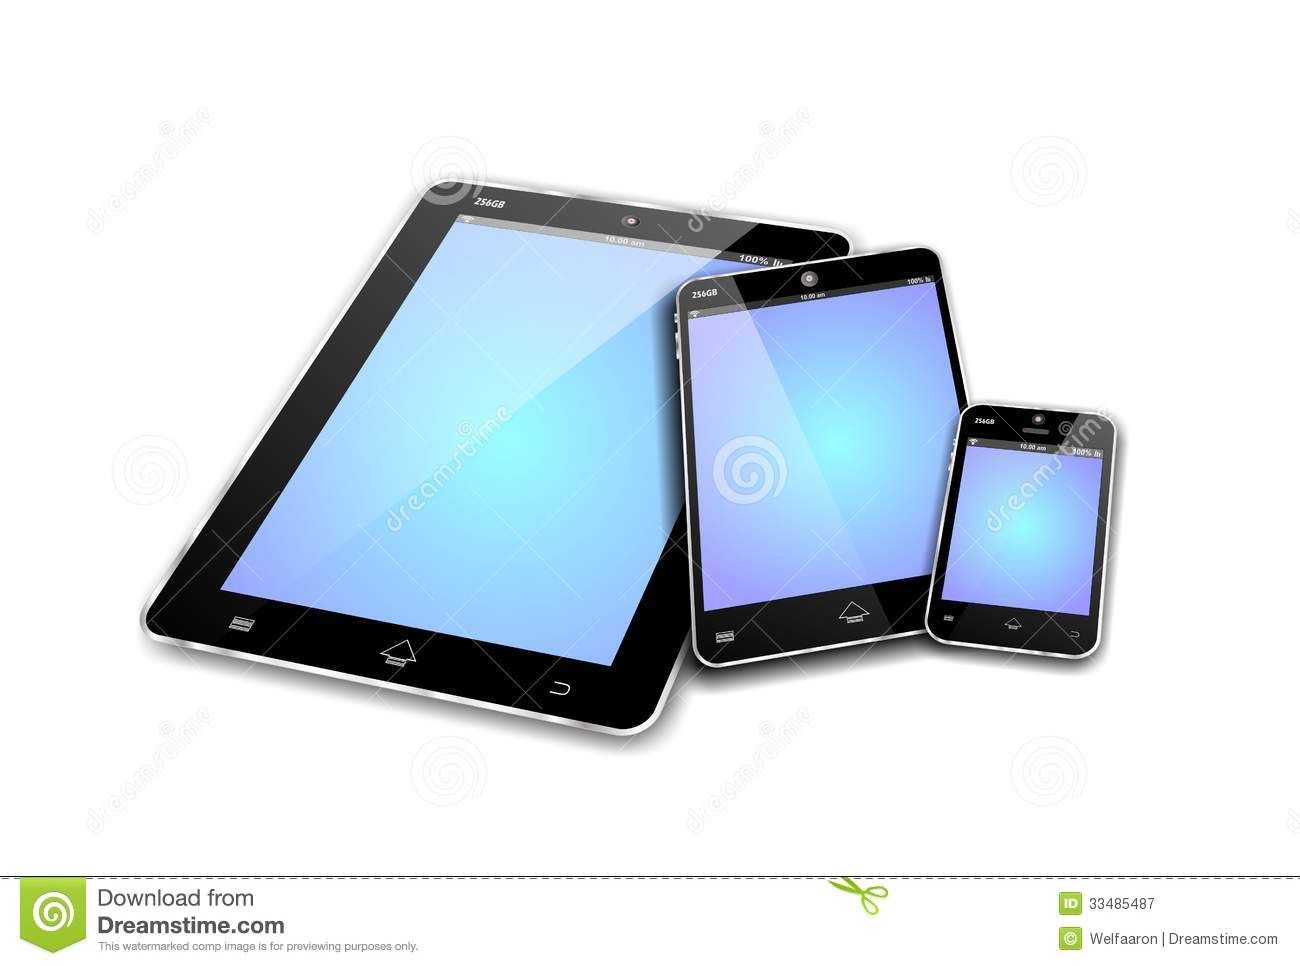 MOBILE DEVICES empty screens